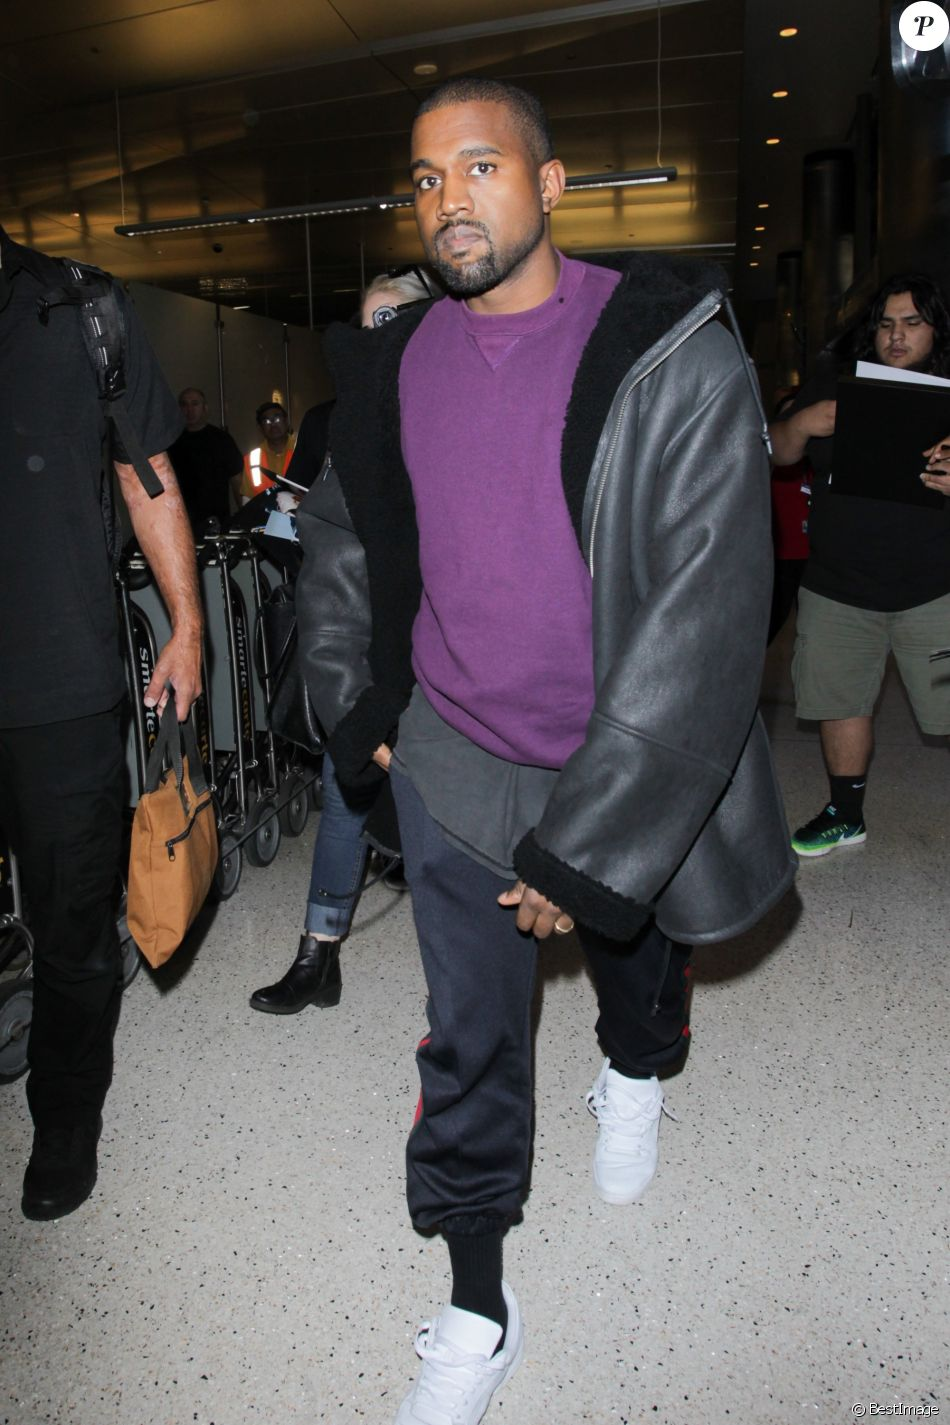 Kanye West arrive à l'aéroport de Los Angeles (LAX), le 11 novembre 2016.